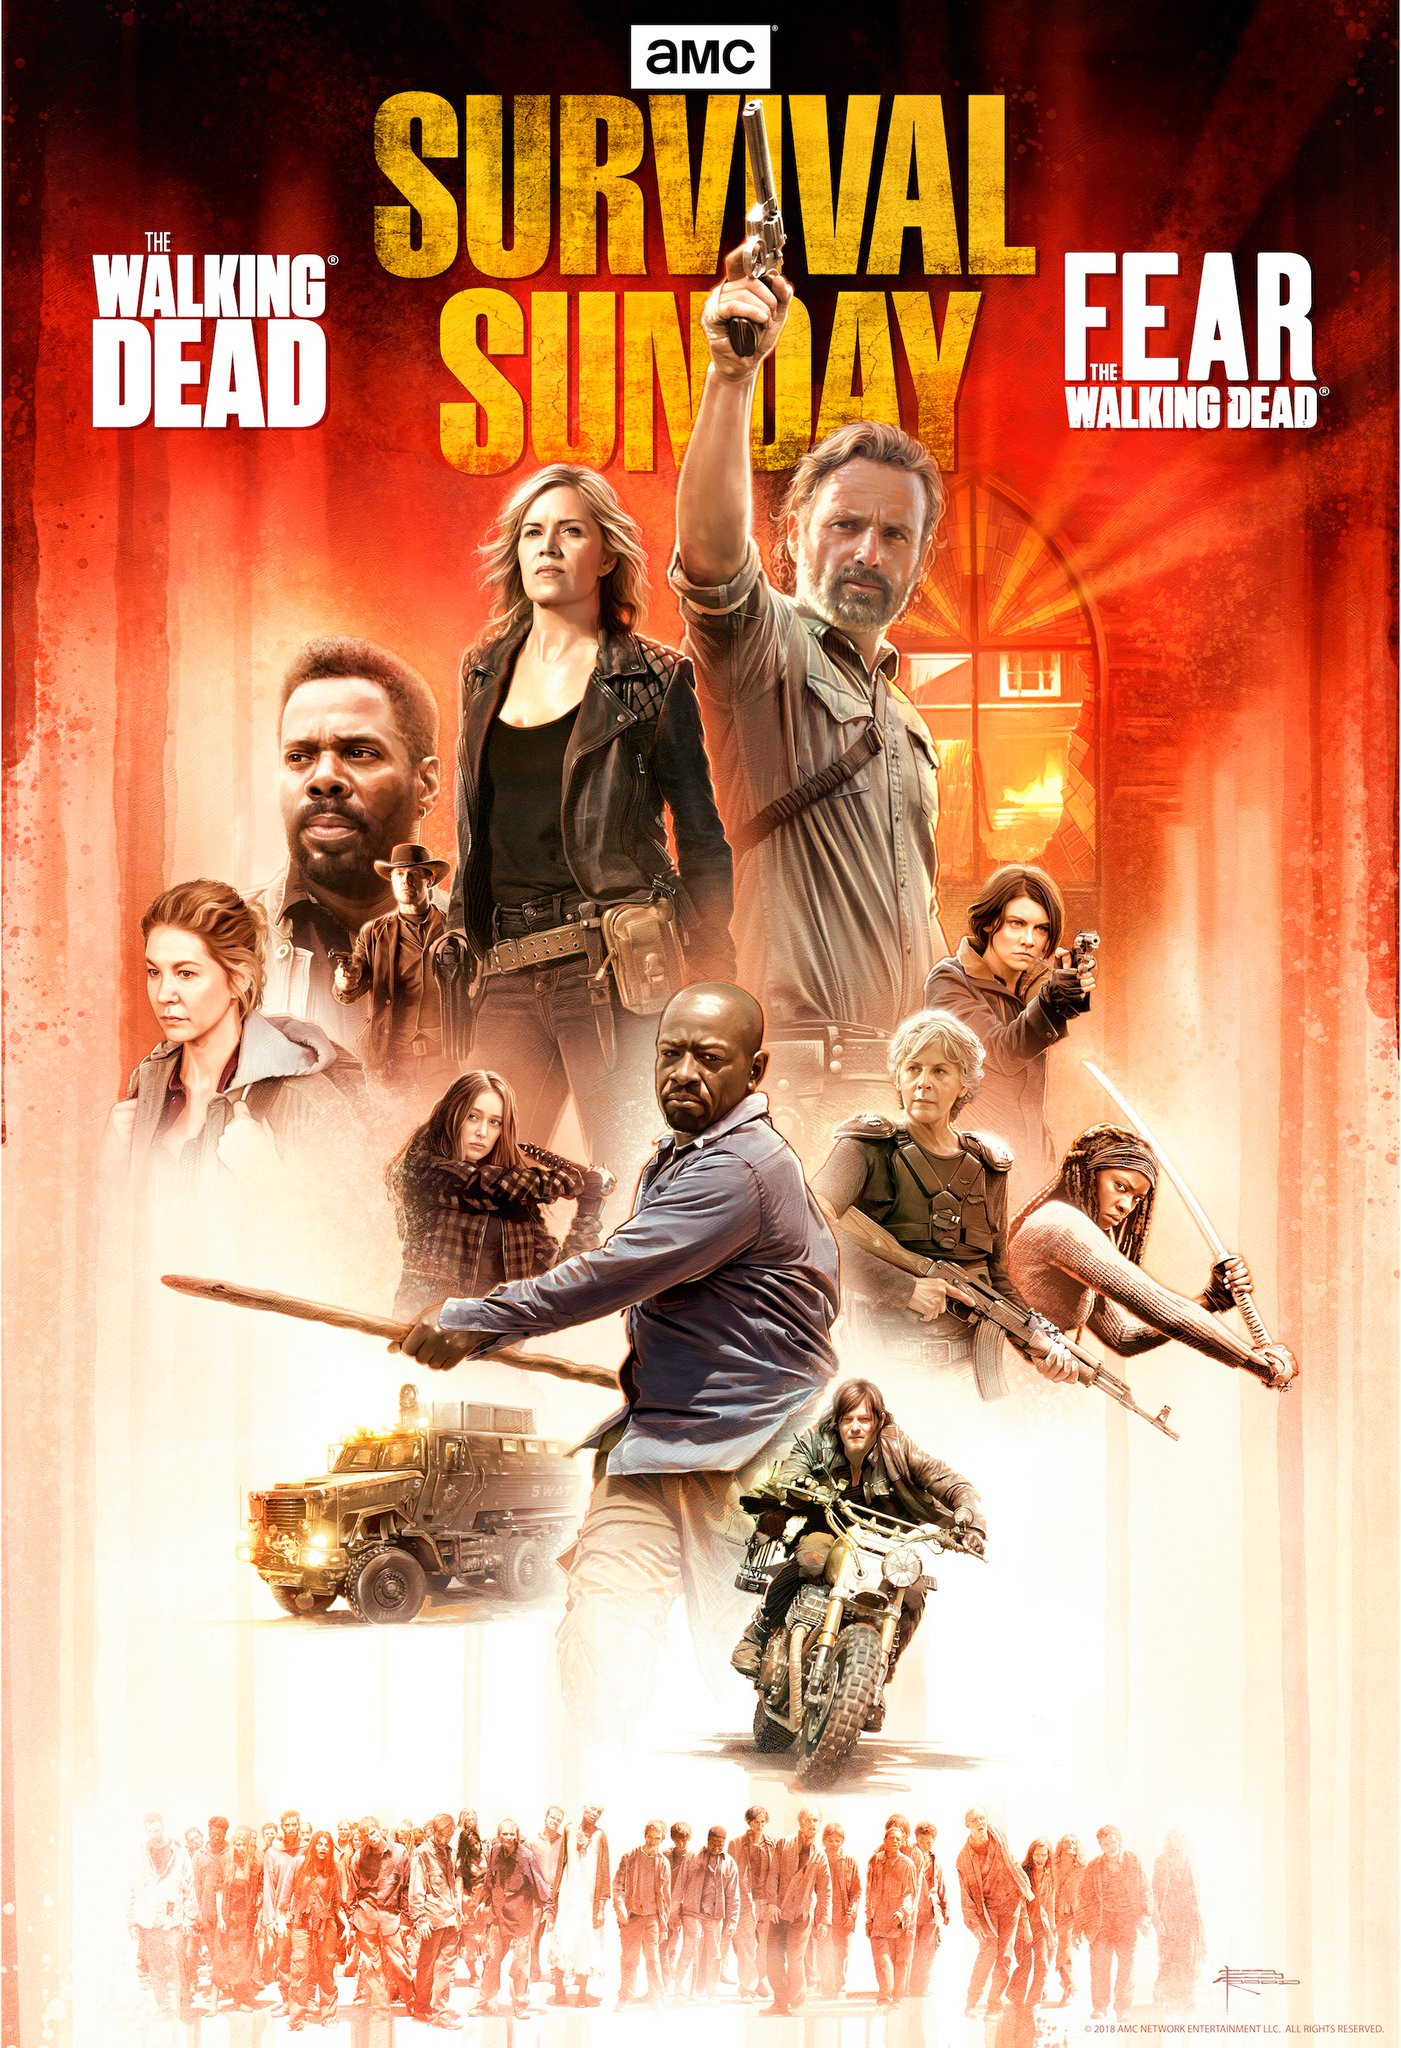 The Walking Dead/Fear the Walking Dead Crossover: Survival Sunday Poster